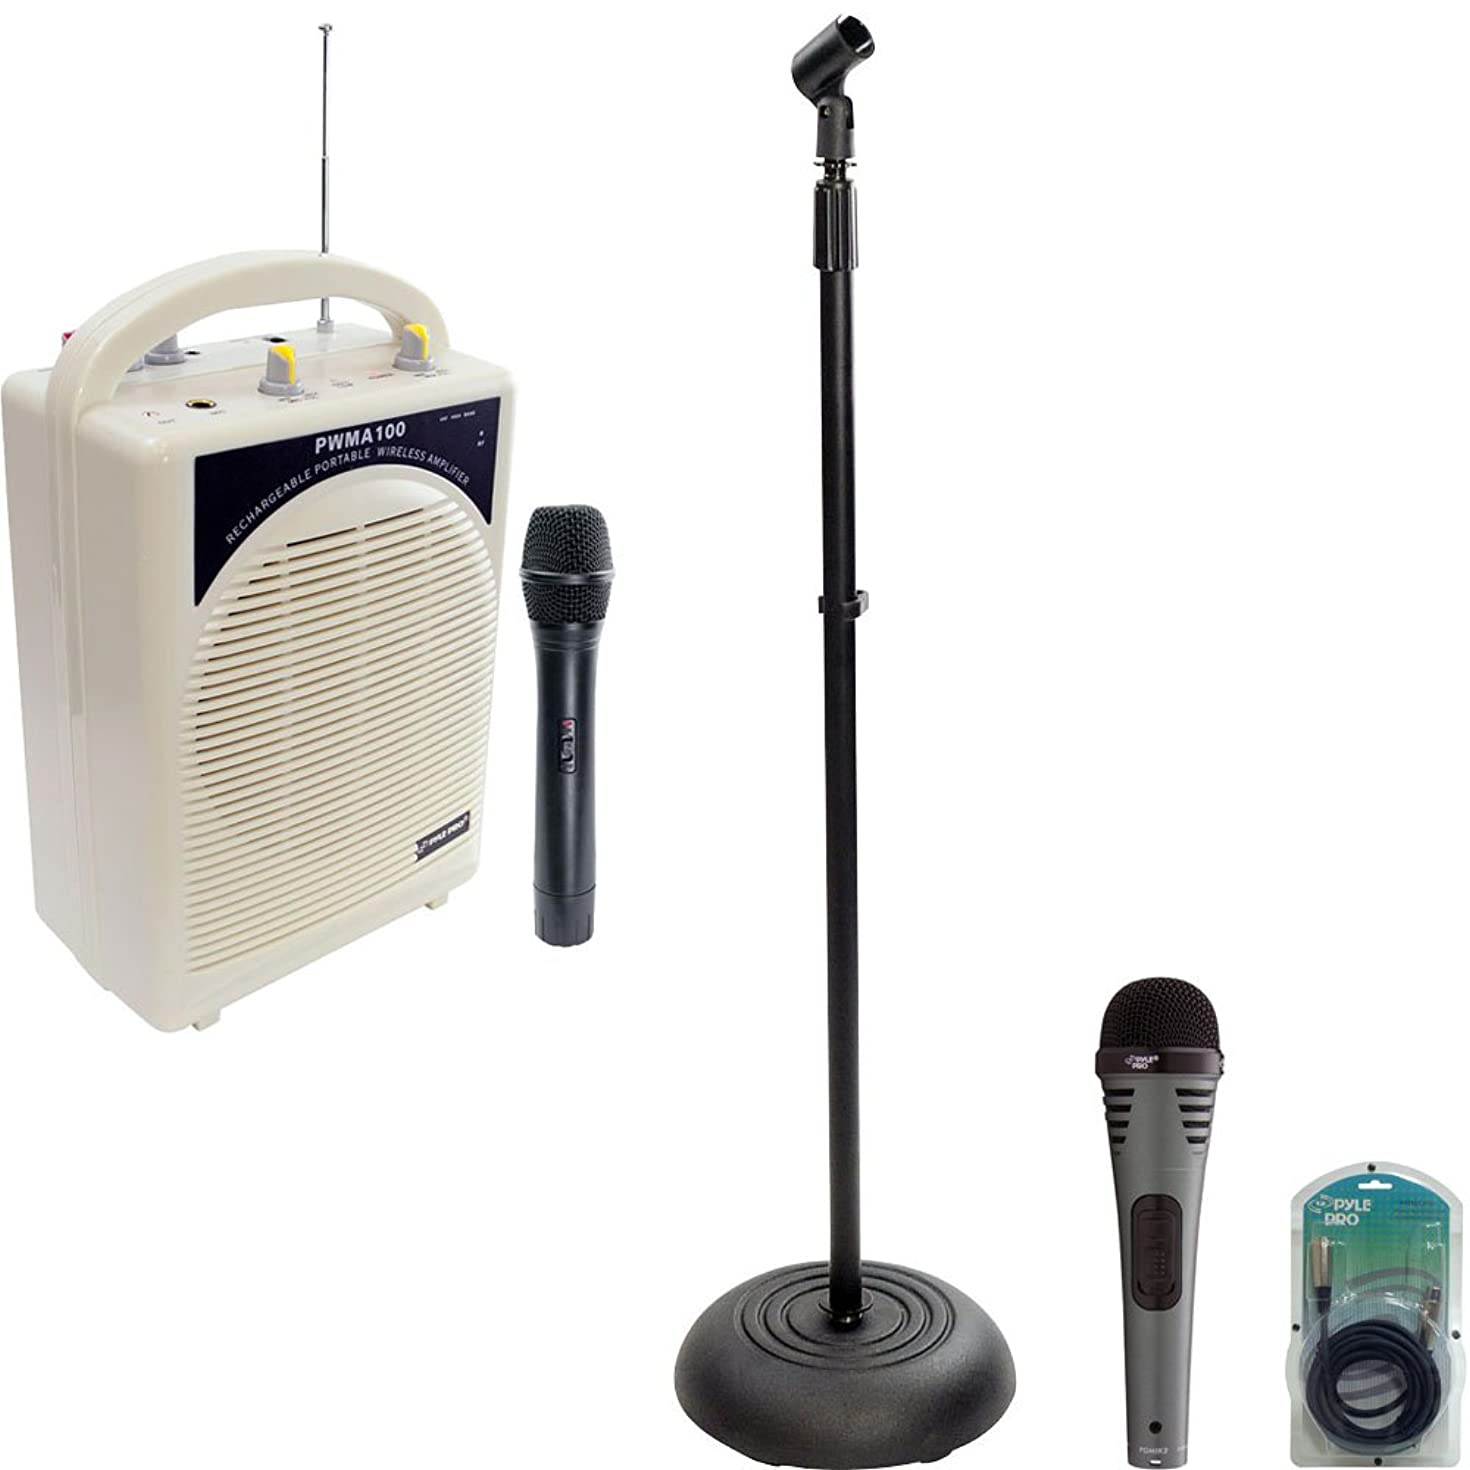 Pyle Speaker, Mic, Cable and Stand Package - PWMA100 Rechargeable Portable PA System with Wireless MIC - PDMIK2 Professional Moving Coil Dynamic Handheld Microphone - PMKS5 Compact Base Black Microphone Stand - PPFMXLR15 15ft. XLR Male to XLR Female Microphone Cable